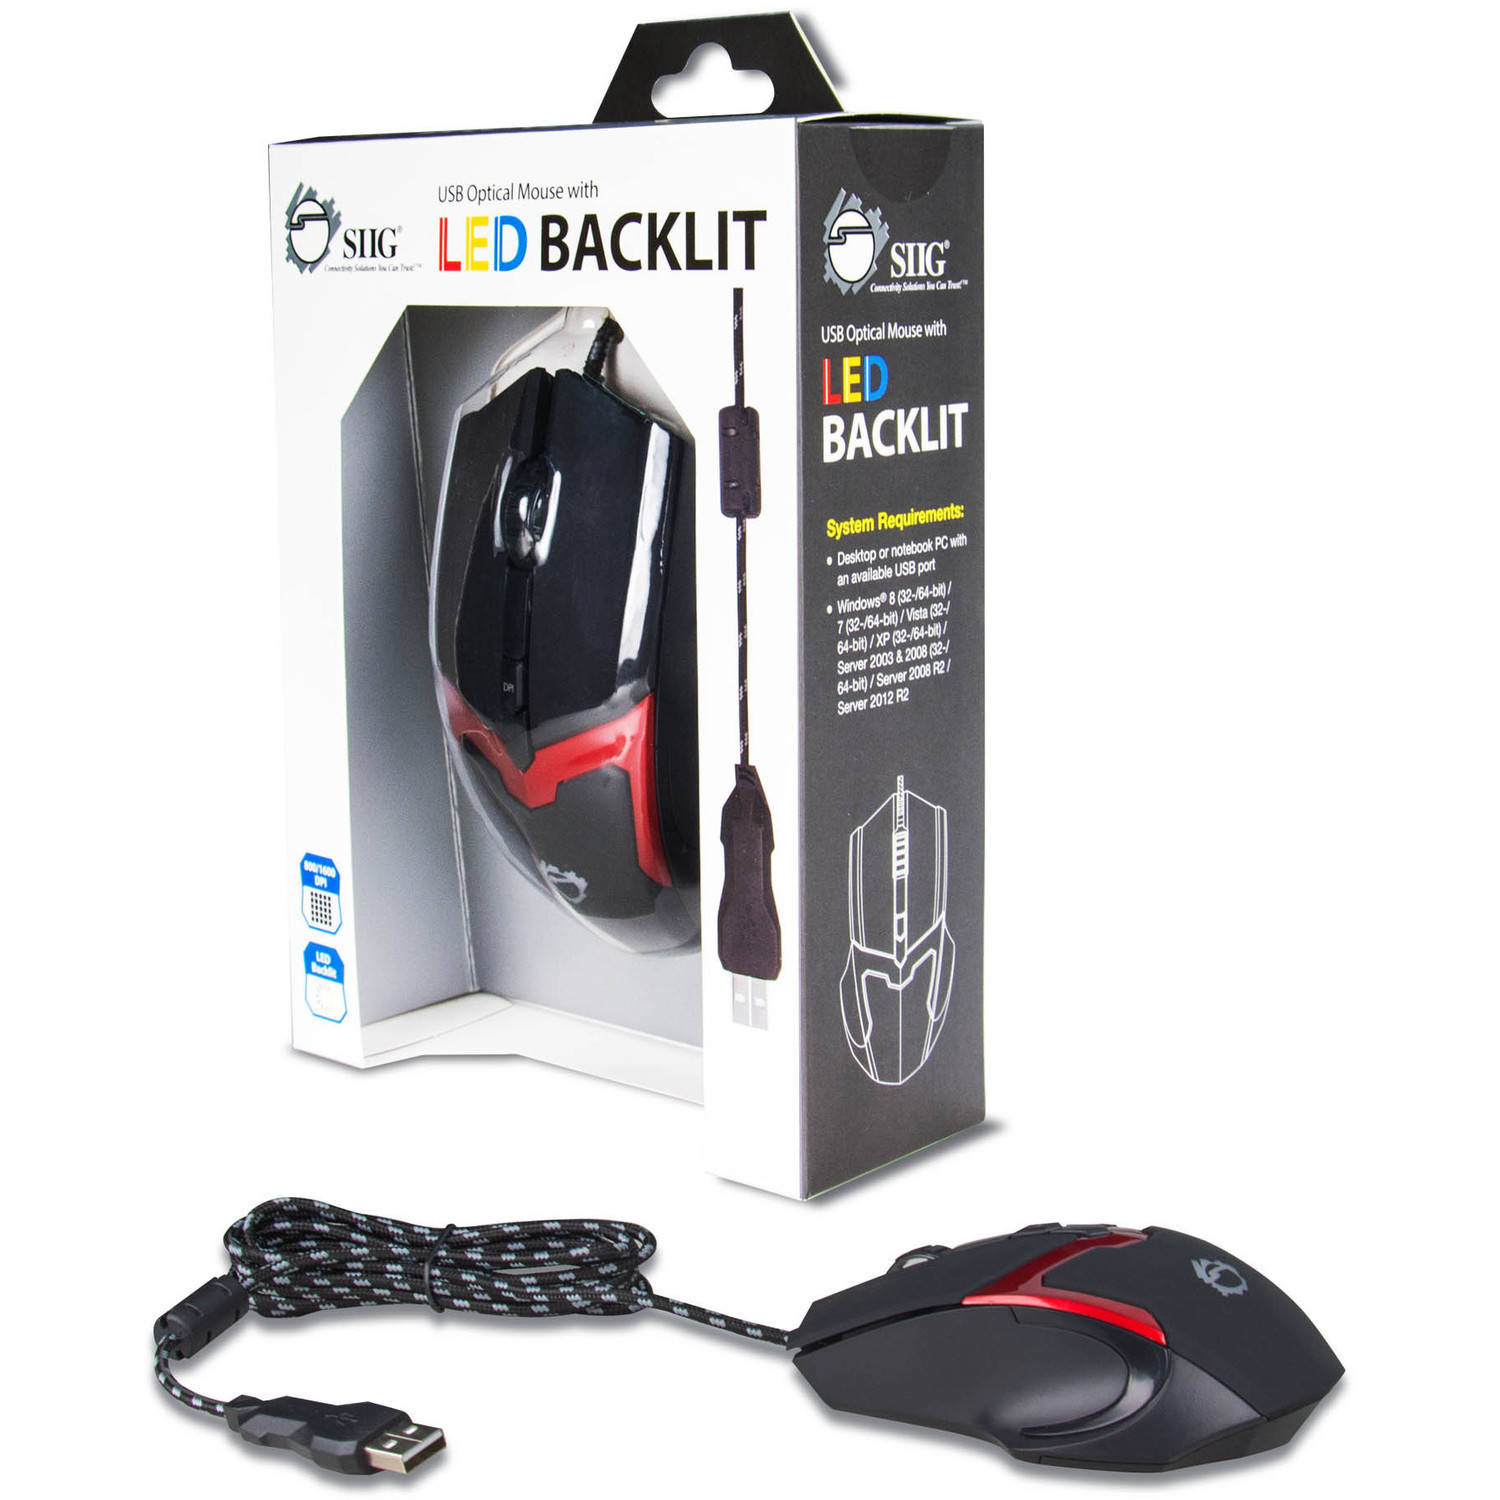 SIIG USB Optical Mouse with LED Backlit, Red